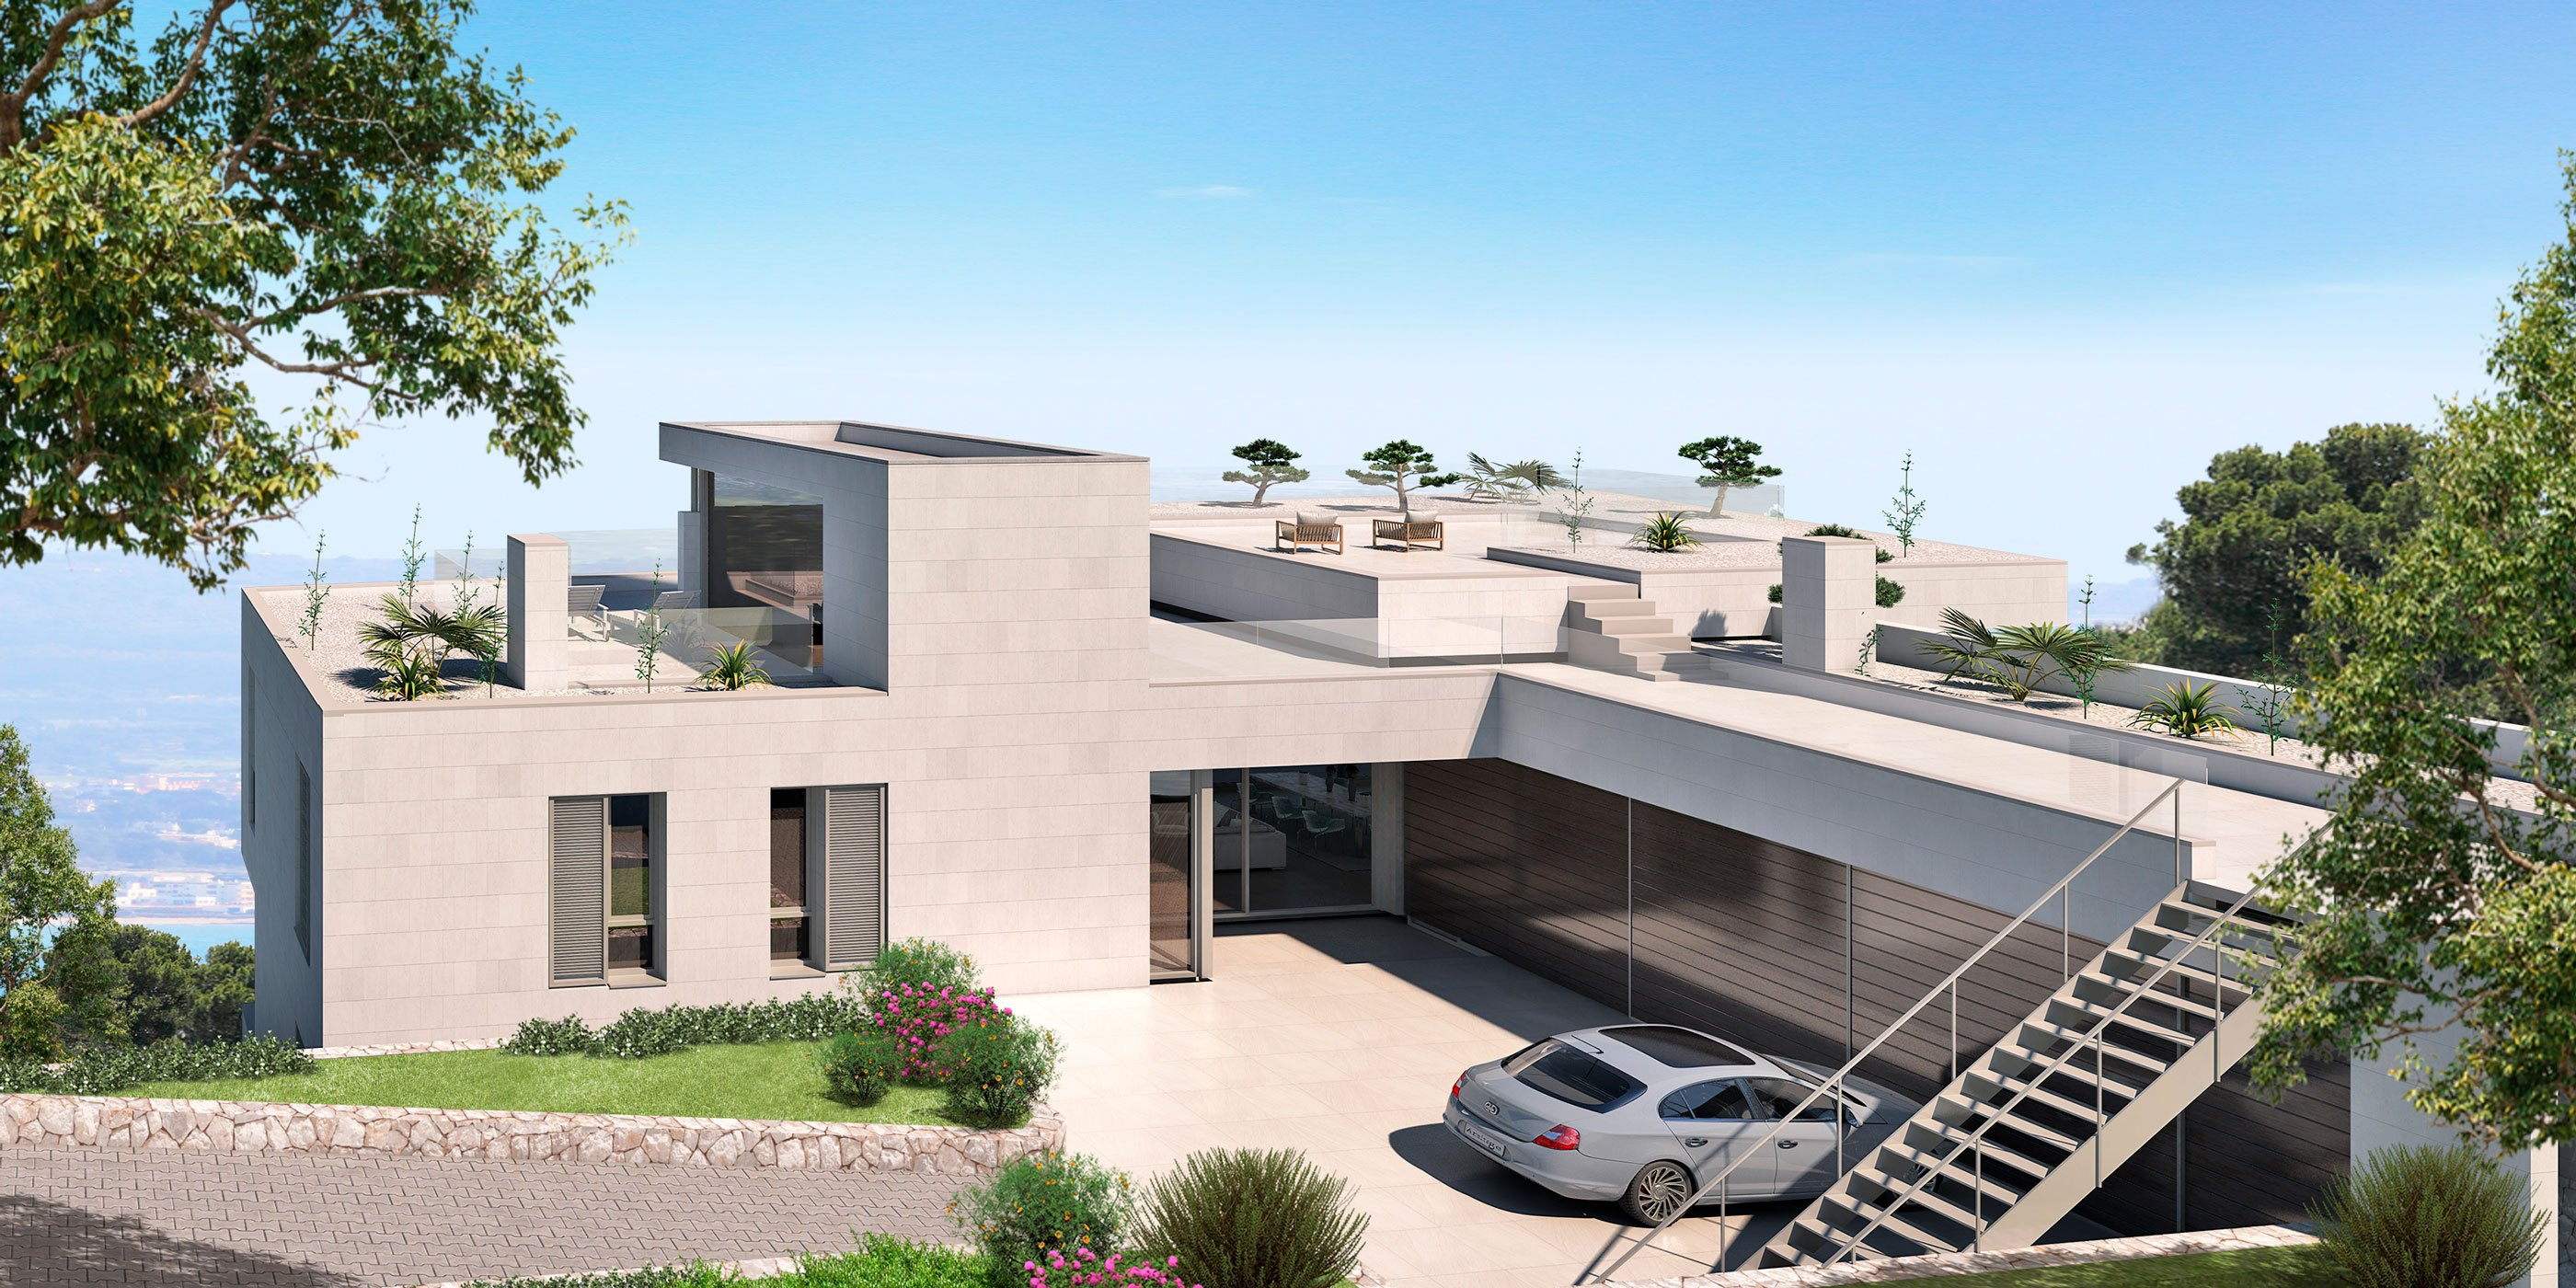 PMA-STUDIO-Son-Vida-3-Architect-Mallorca-House-Project-Management-Architecture-06